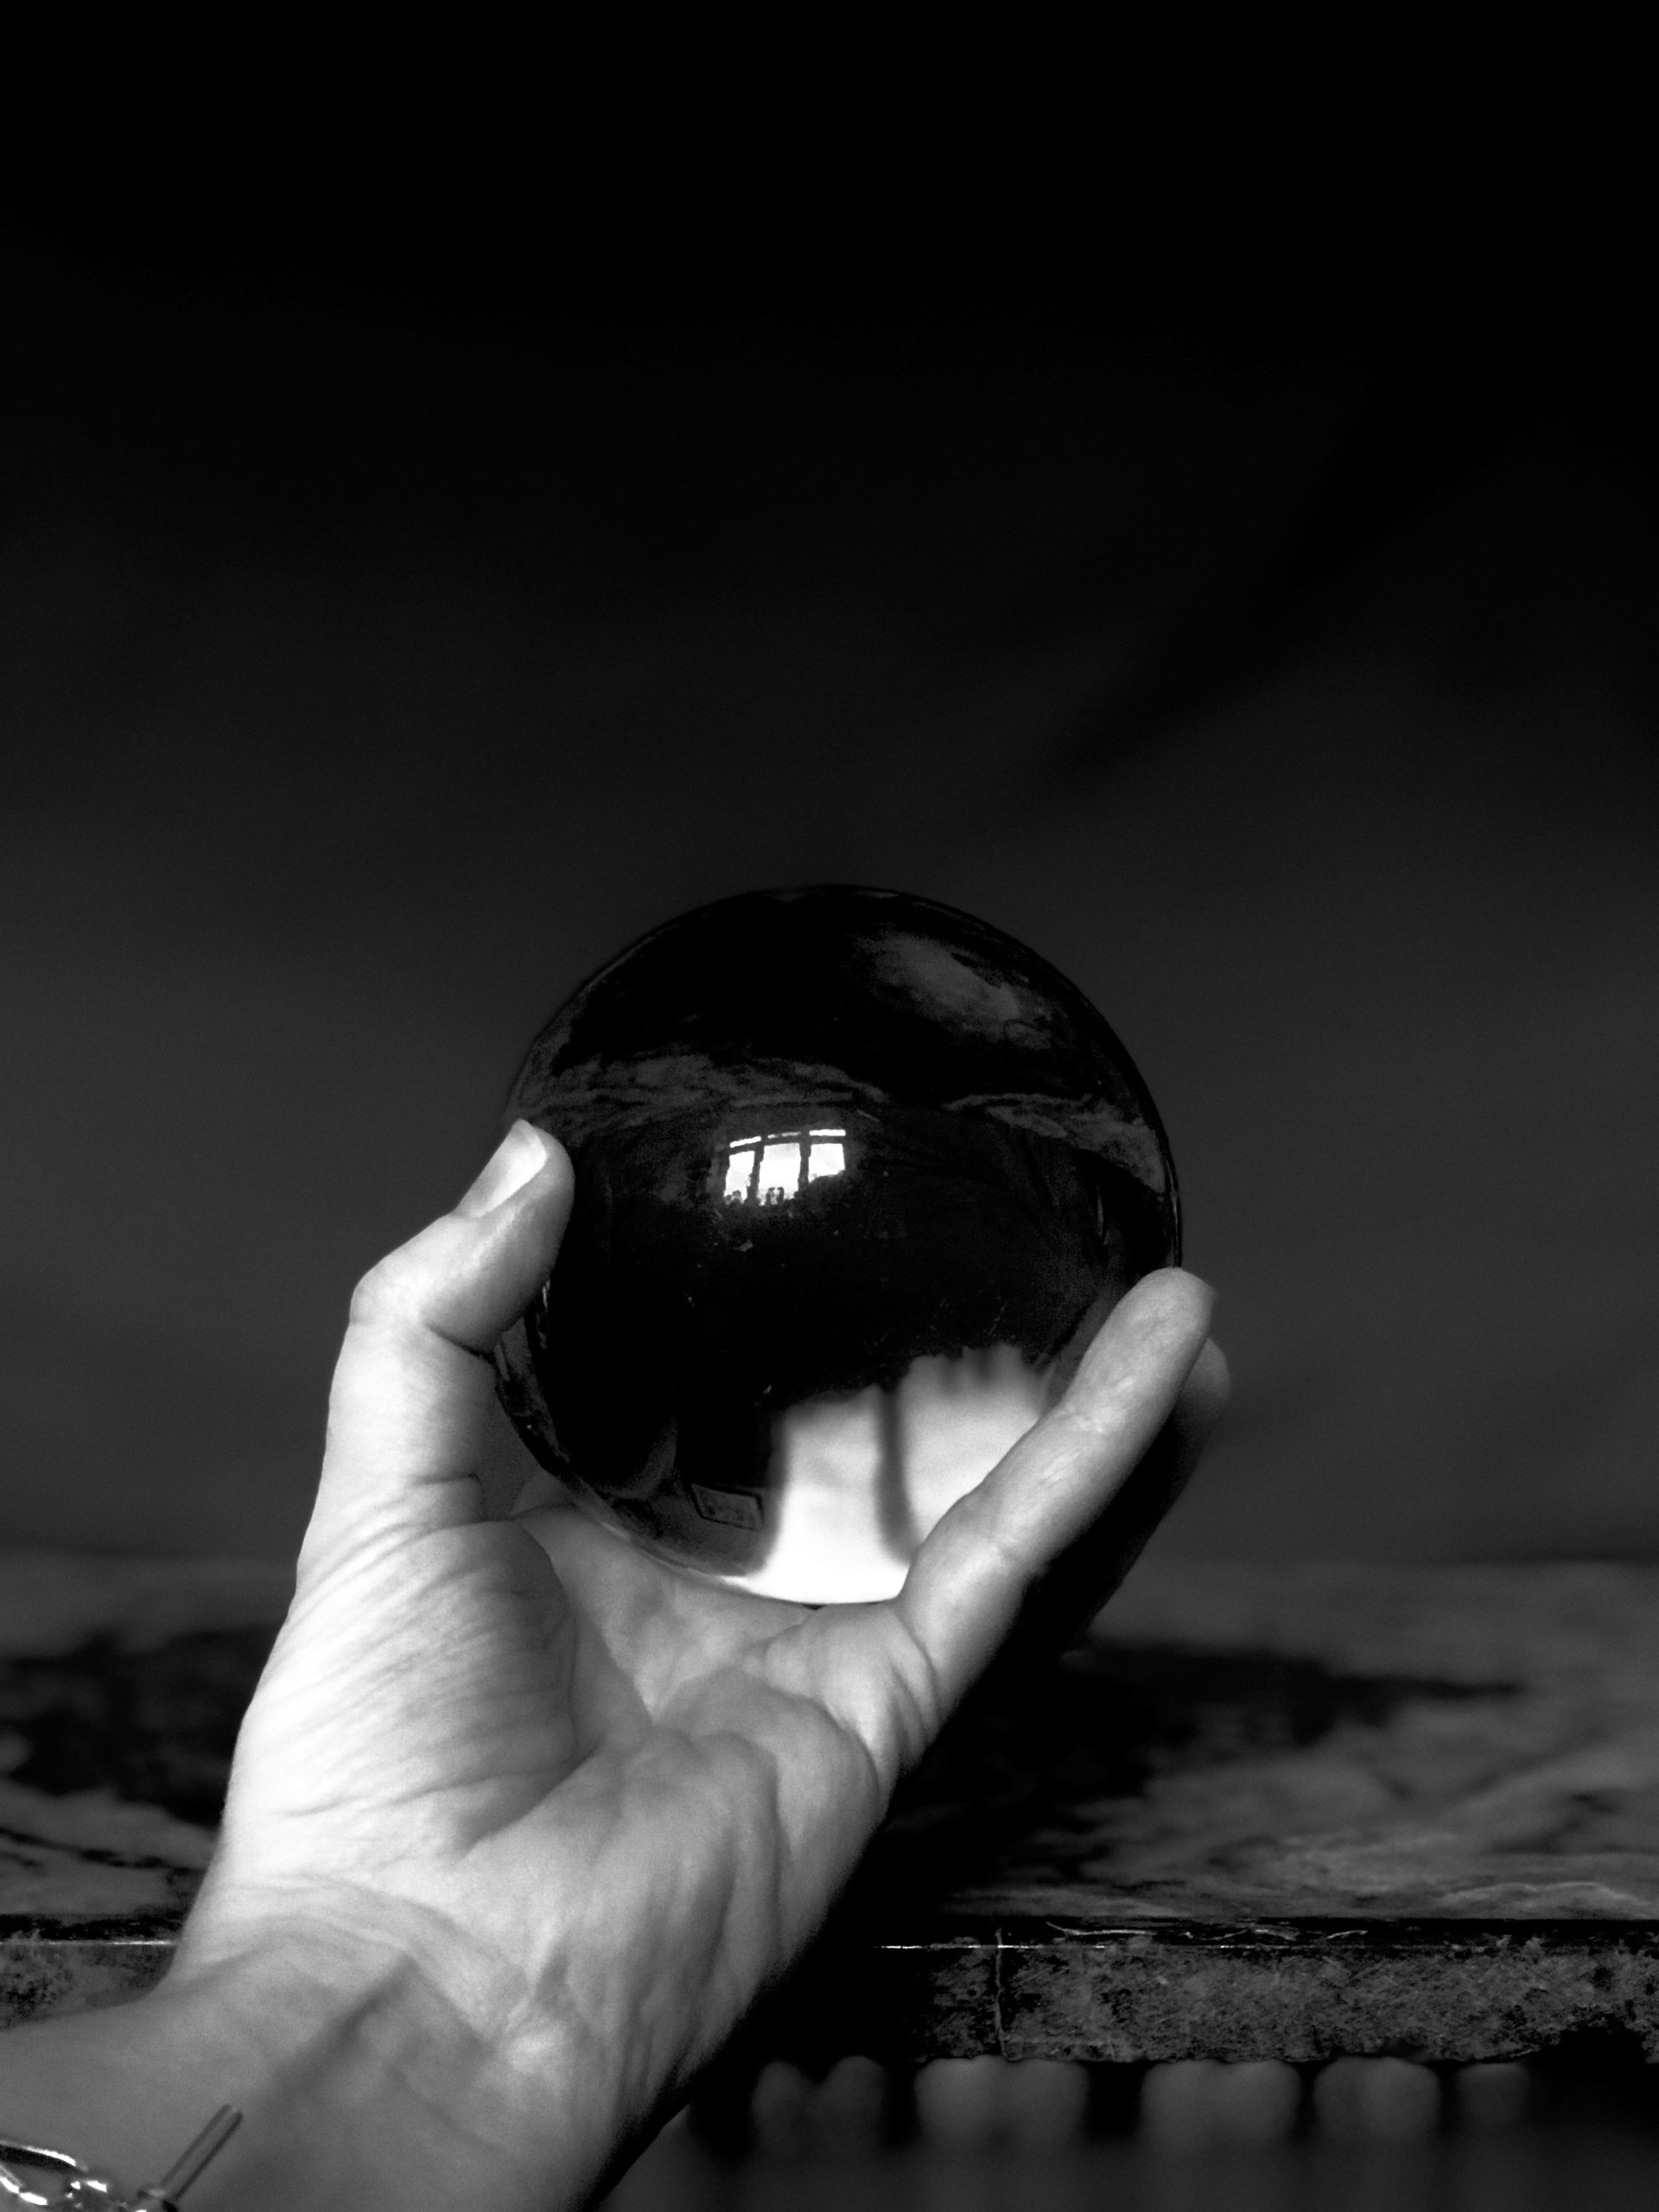 Holding the crystal ball